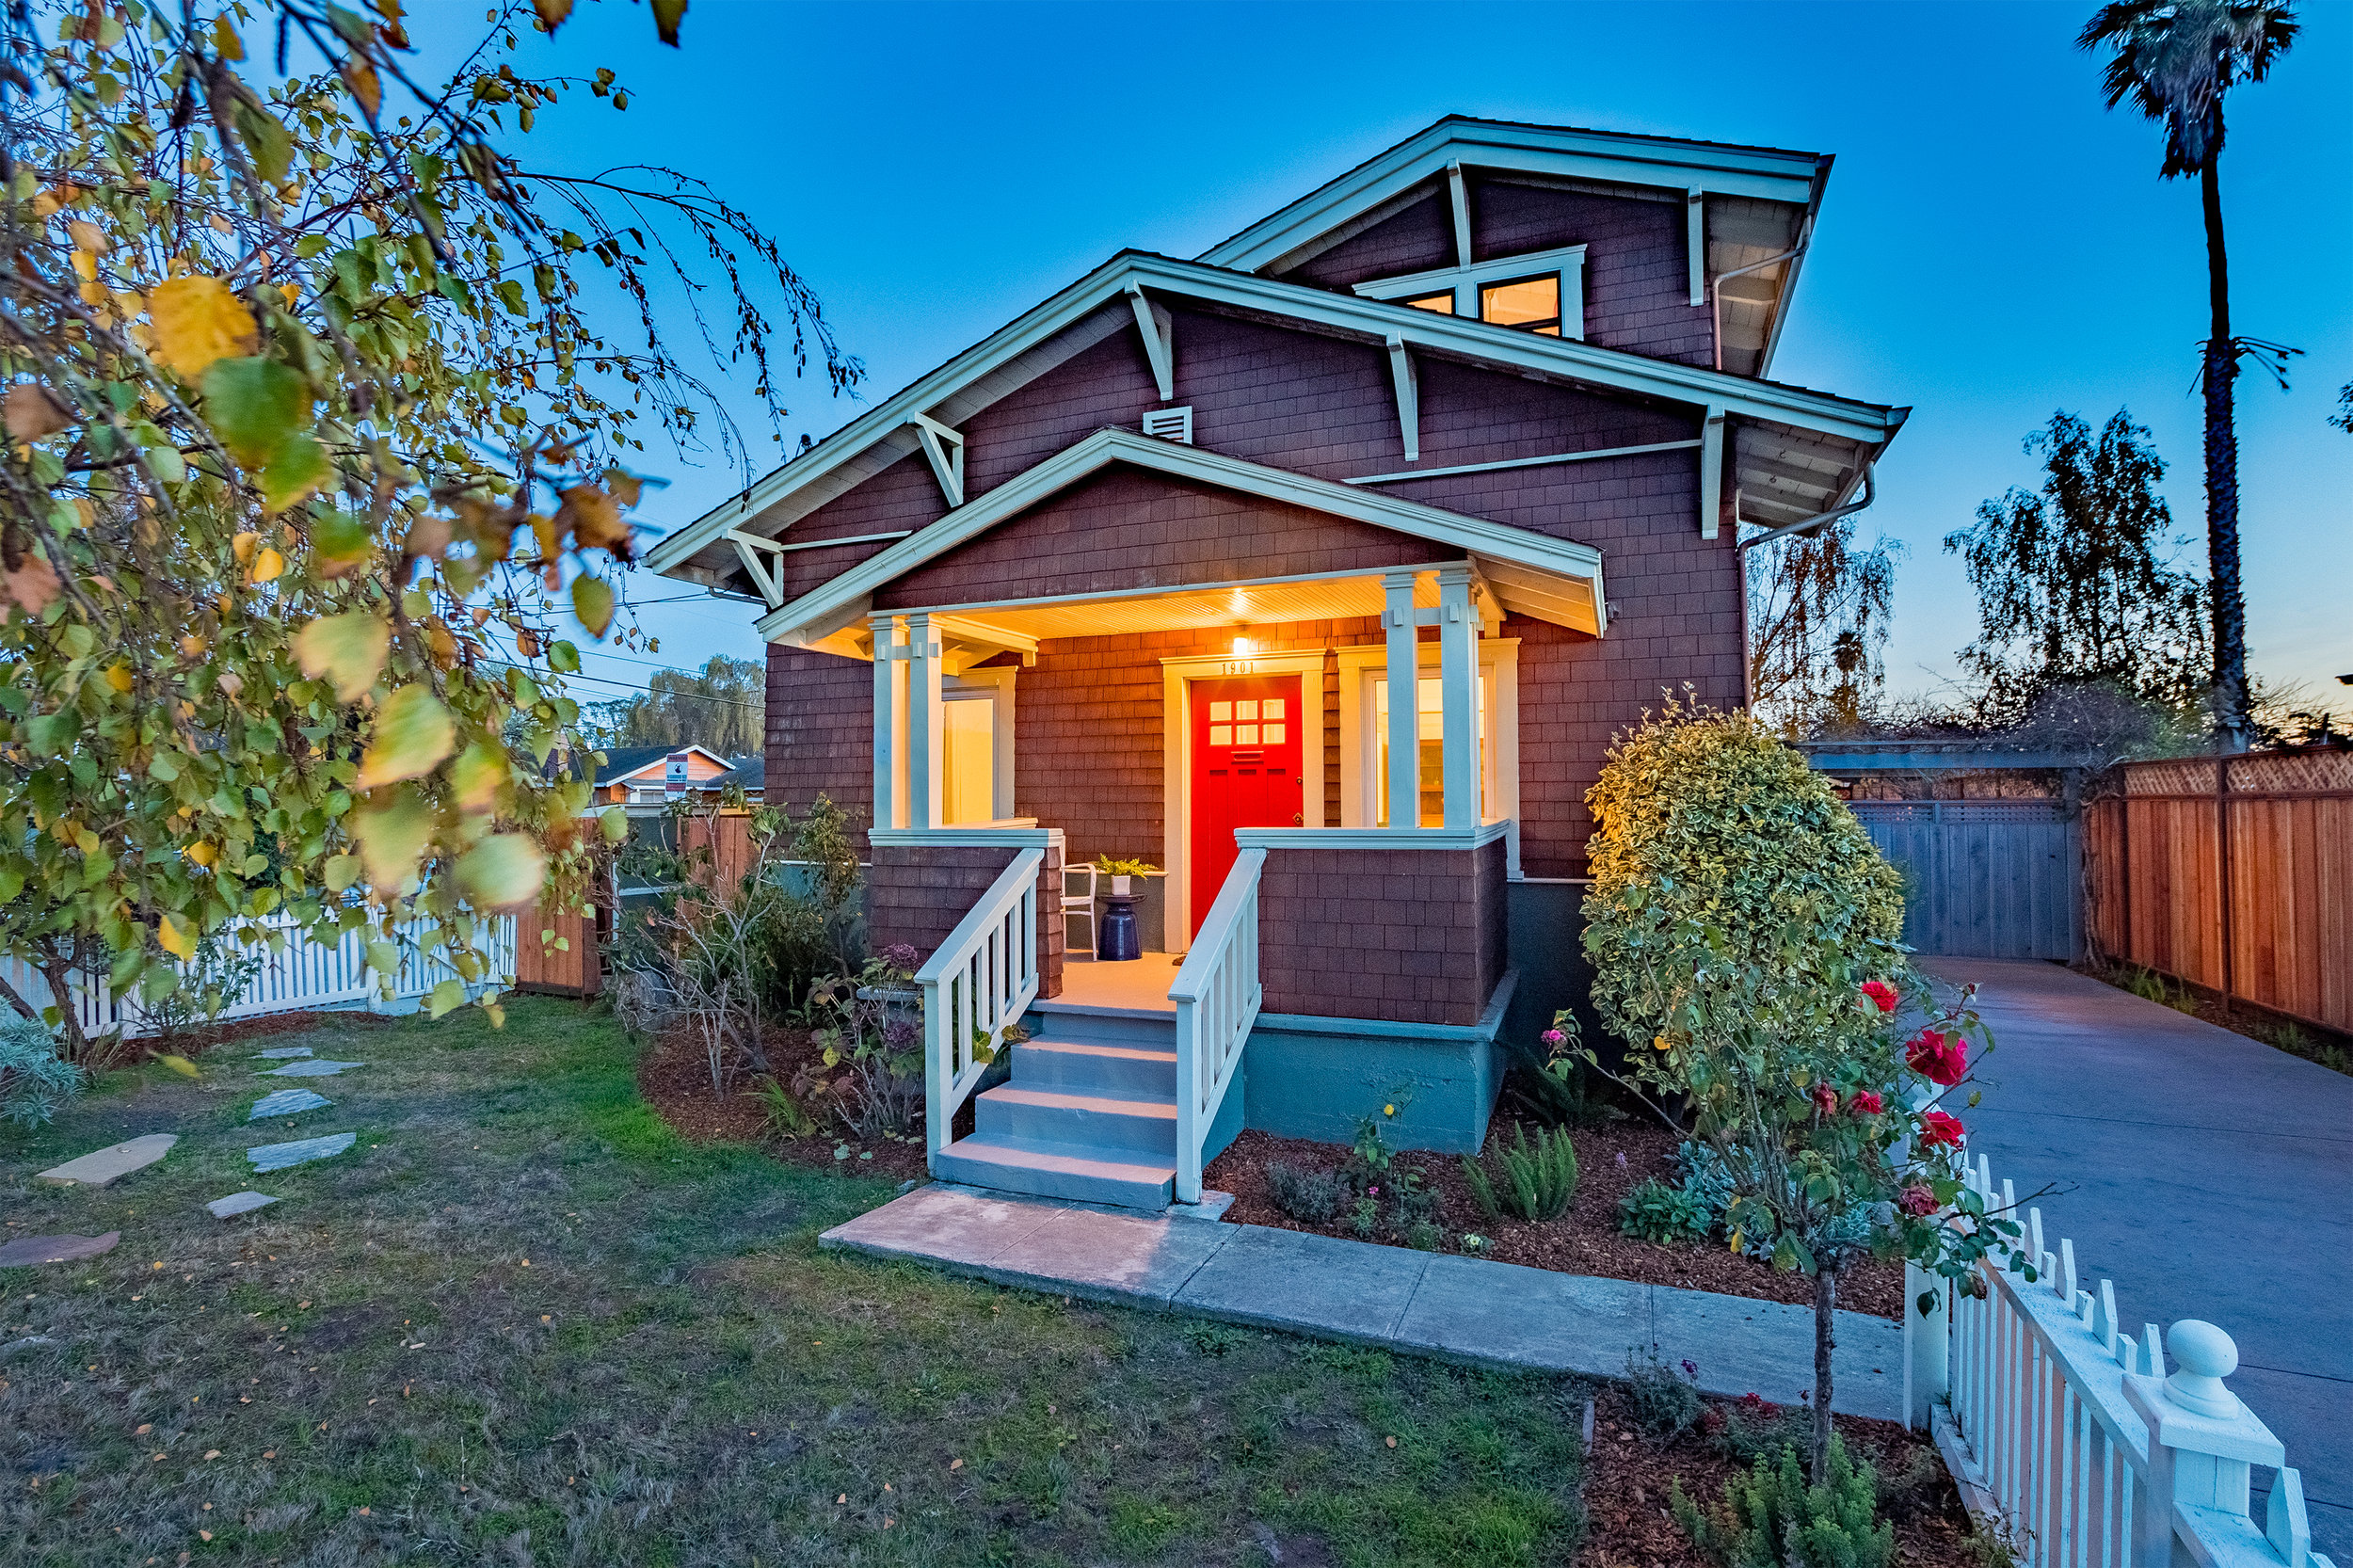 SOLD 1901 Delaware Ave, Santa Cruz $1,610,000  3 Bedroom, 2 Bathroom • 2,175 Sq. Ft.